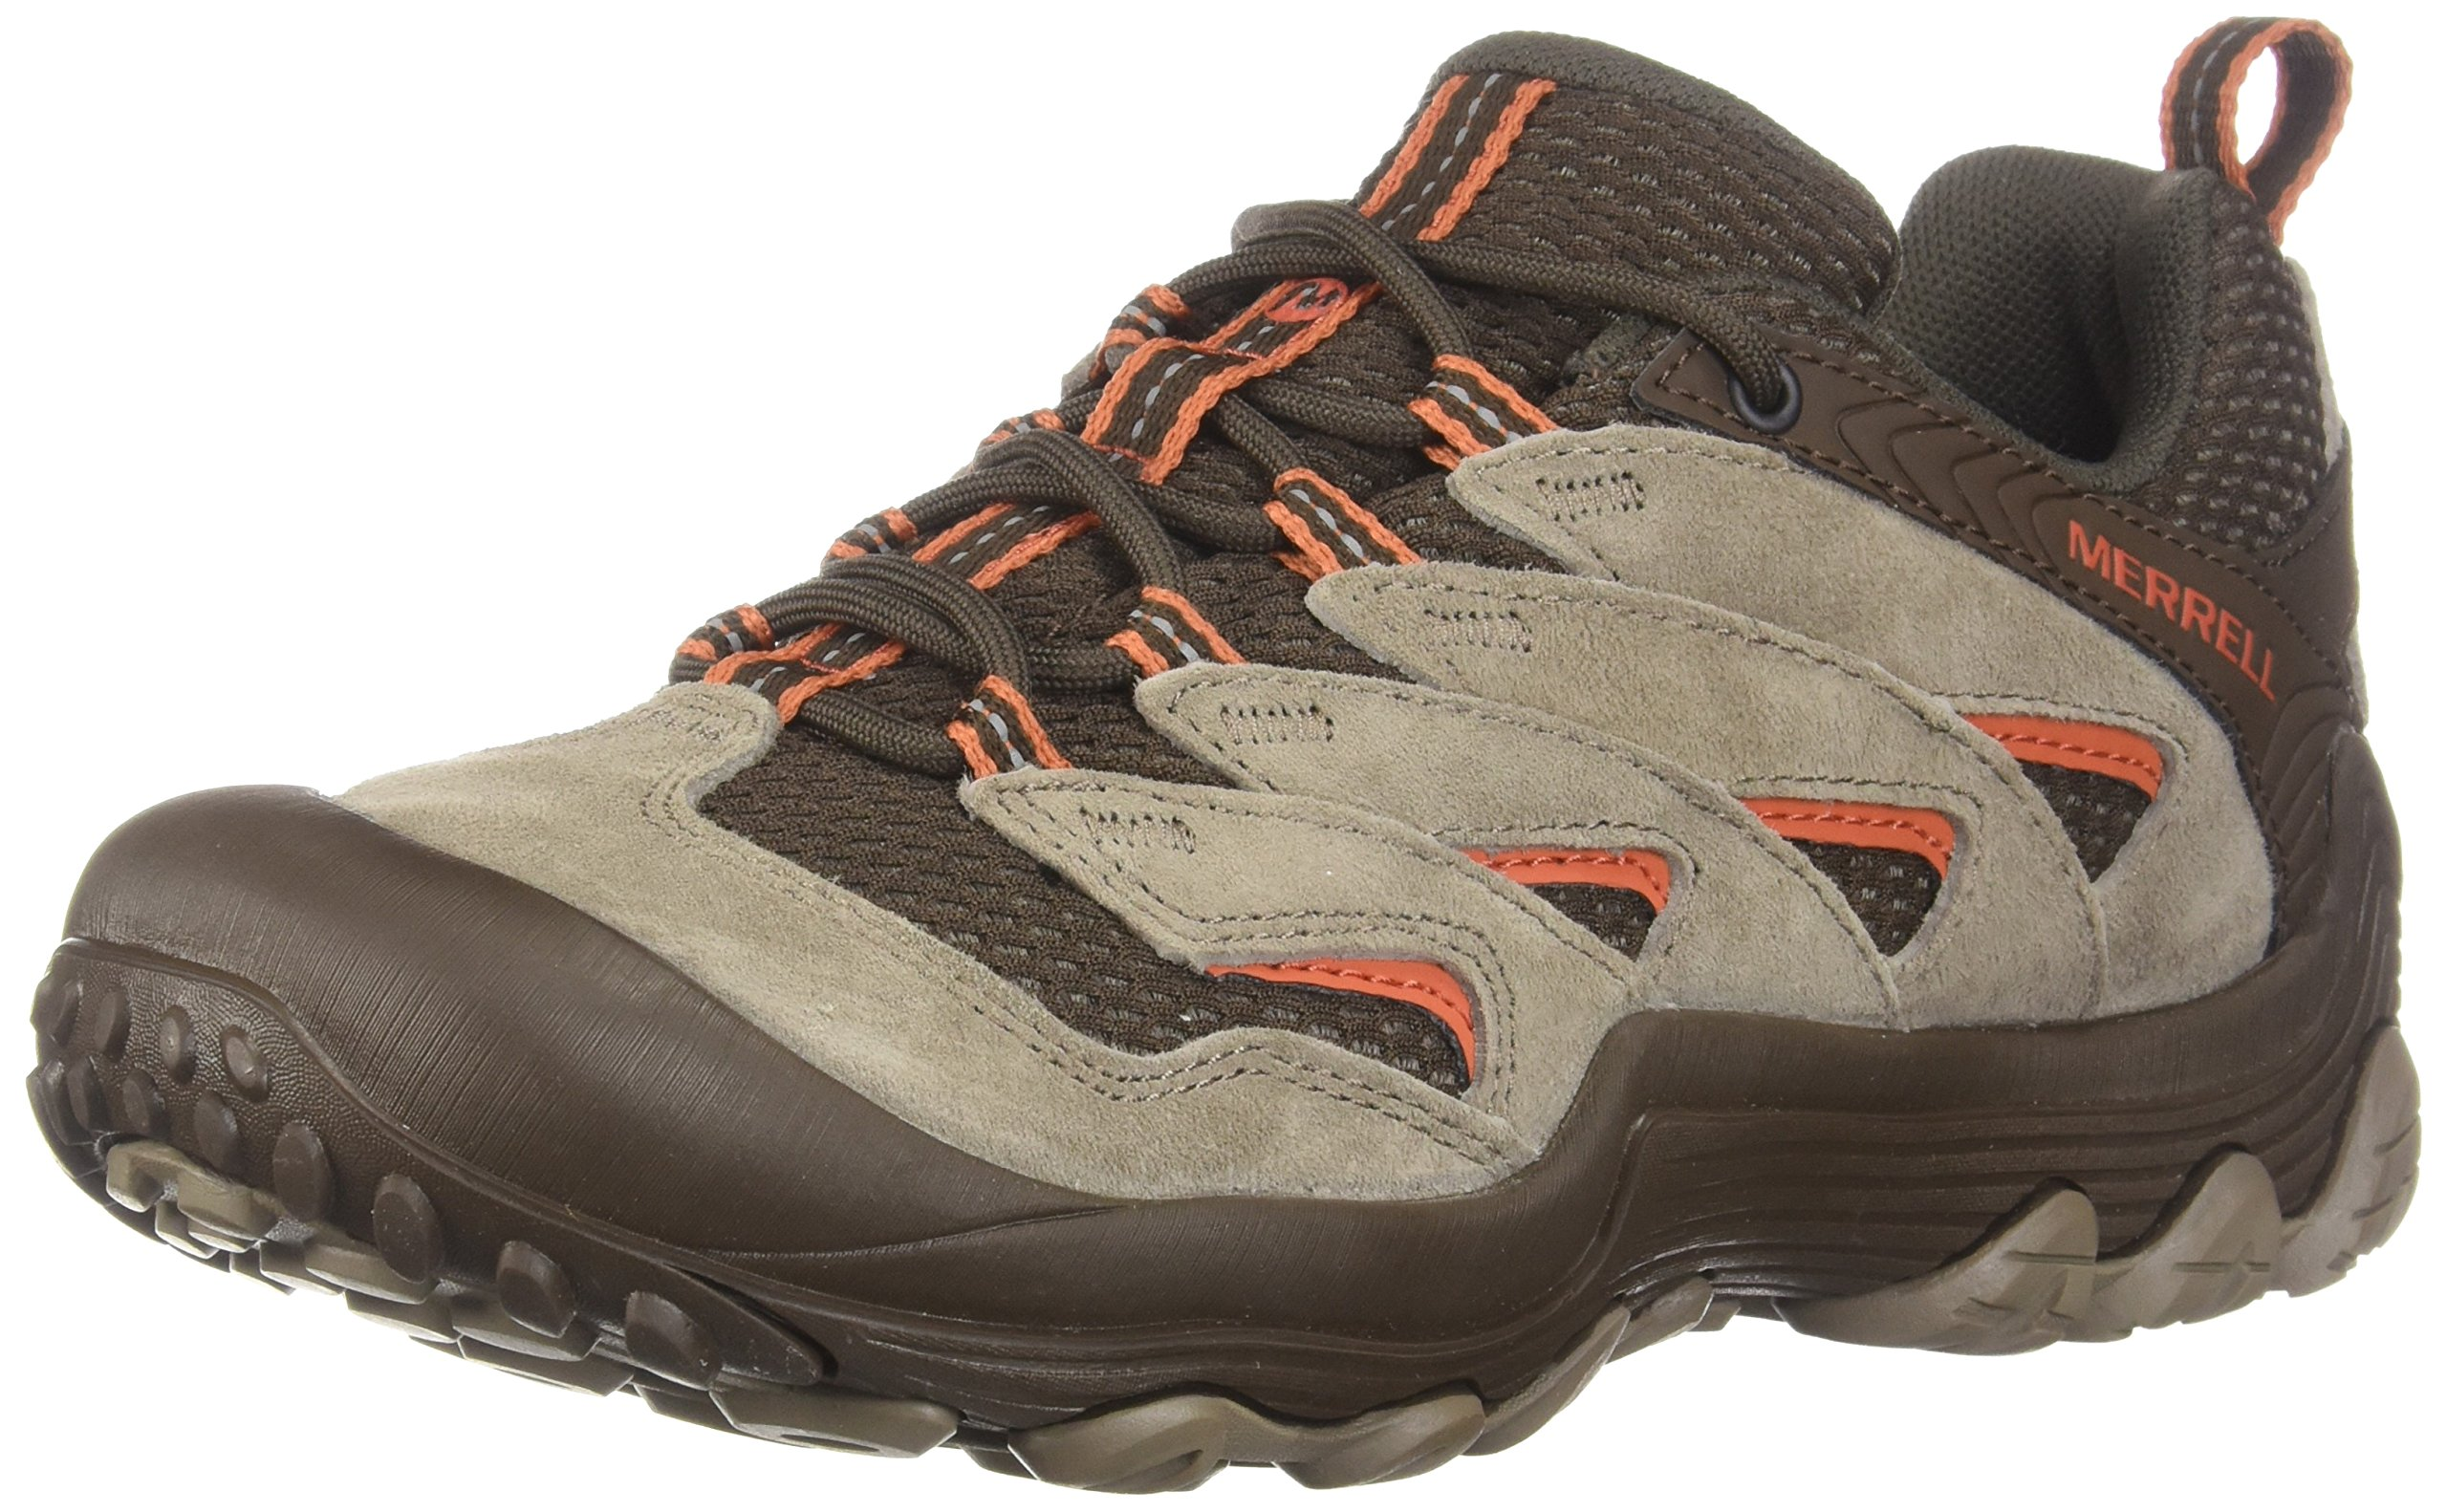 Merrell Women's Chameleon 7 Limit Hiking Boot, Brindle, 6 Medium US